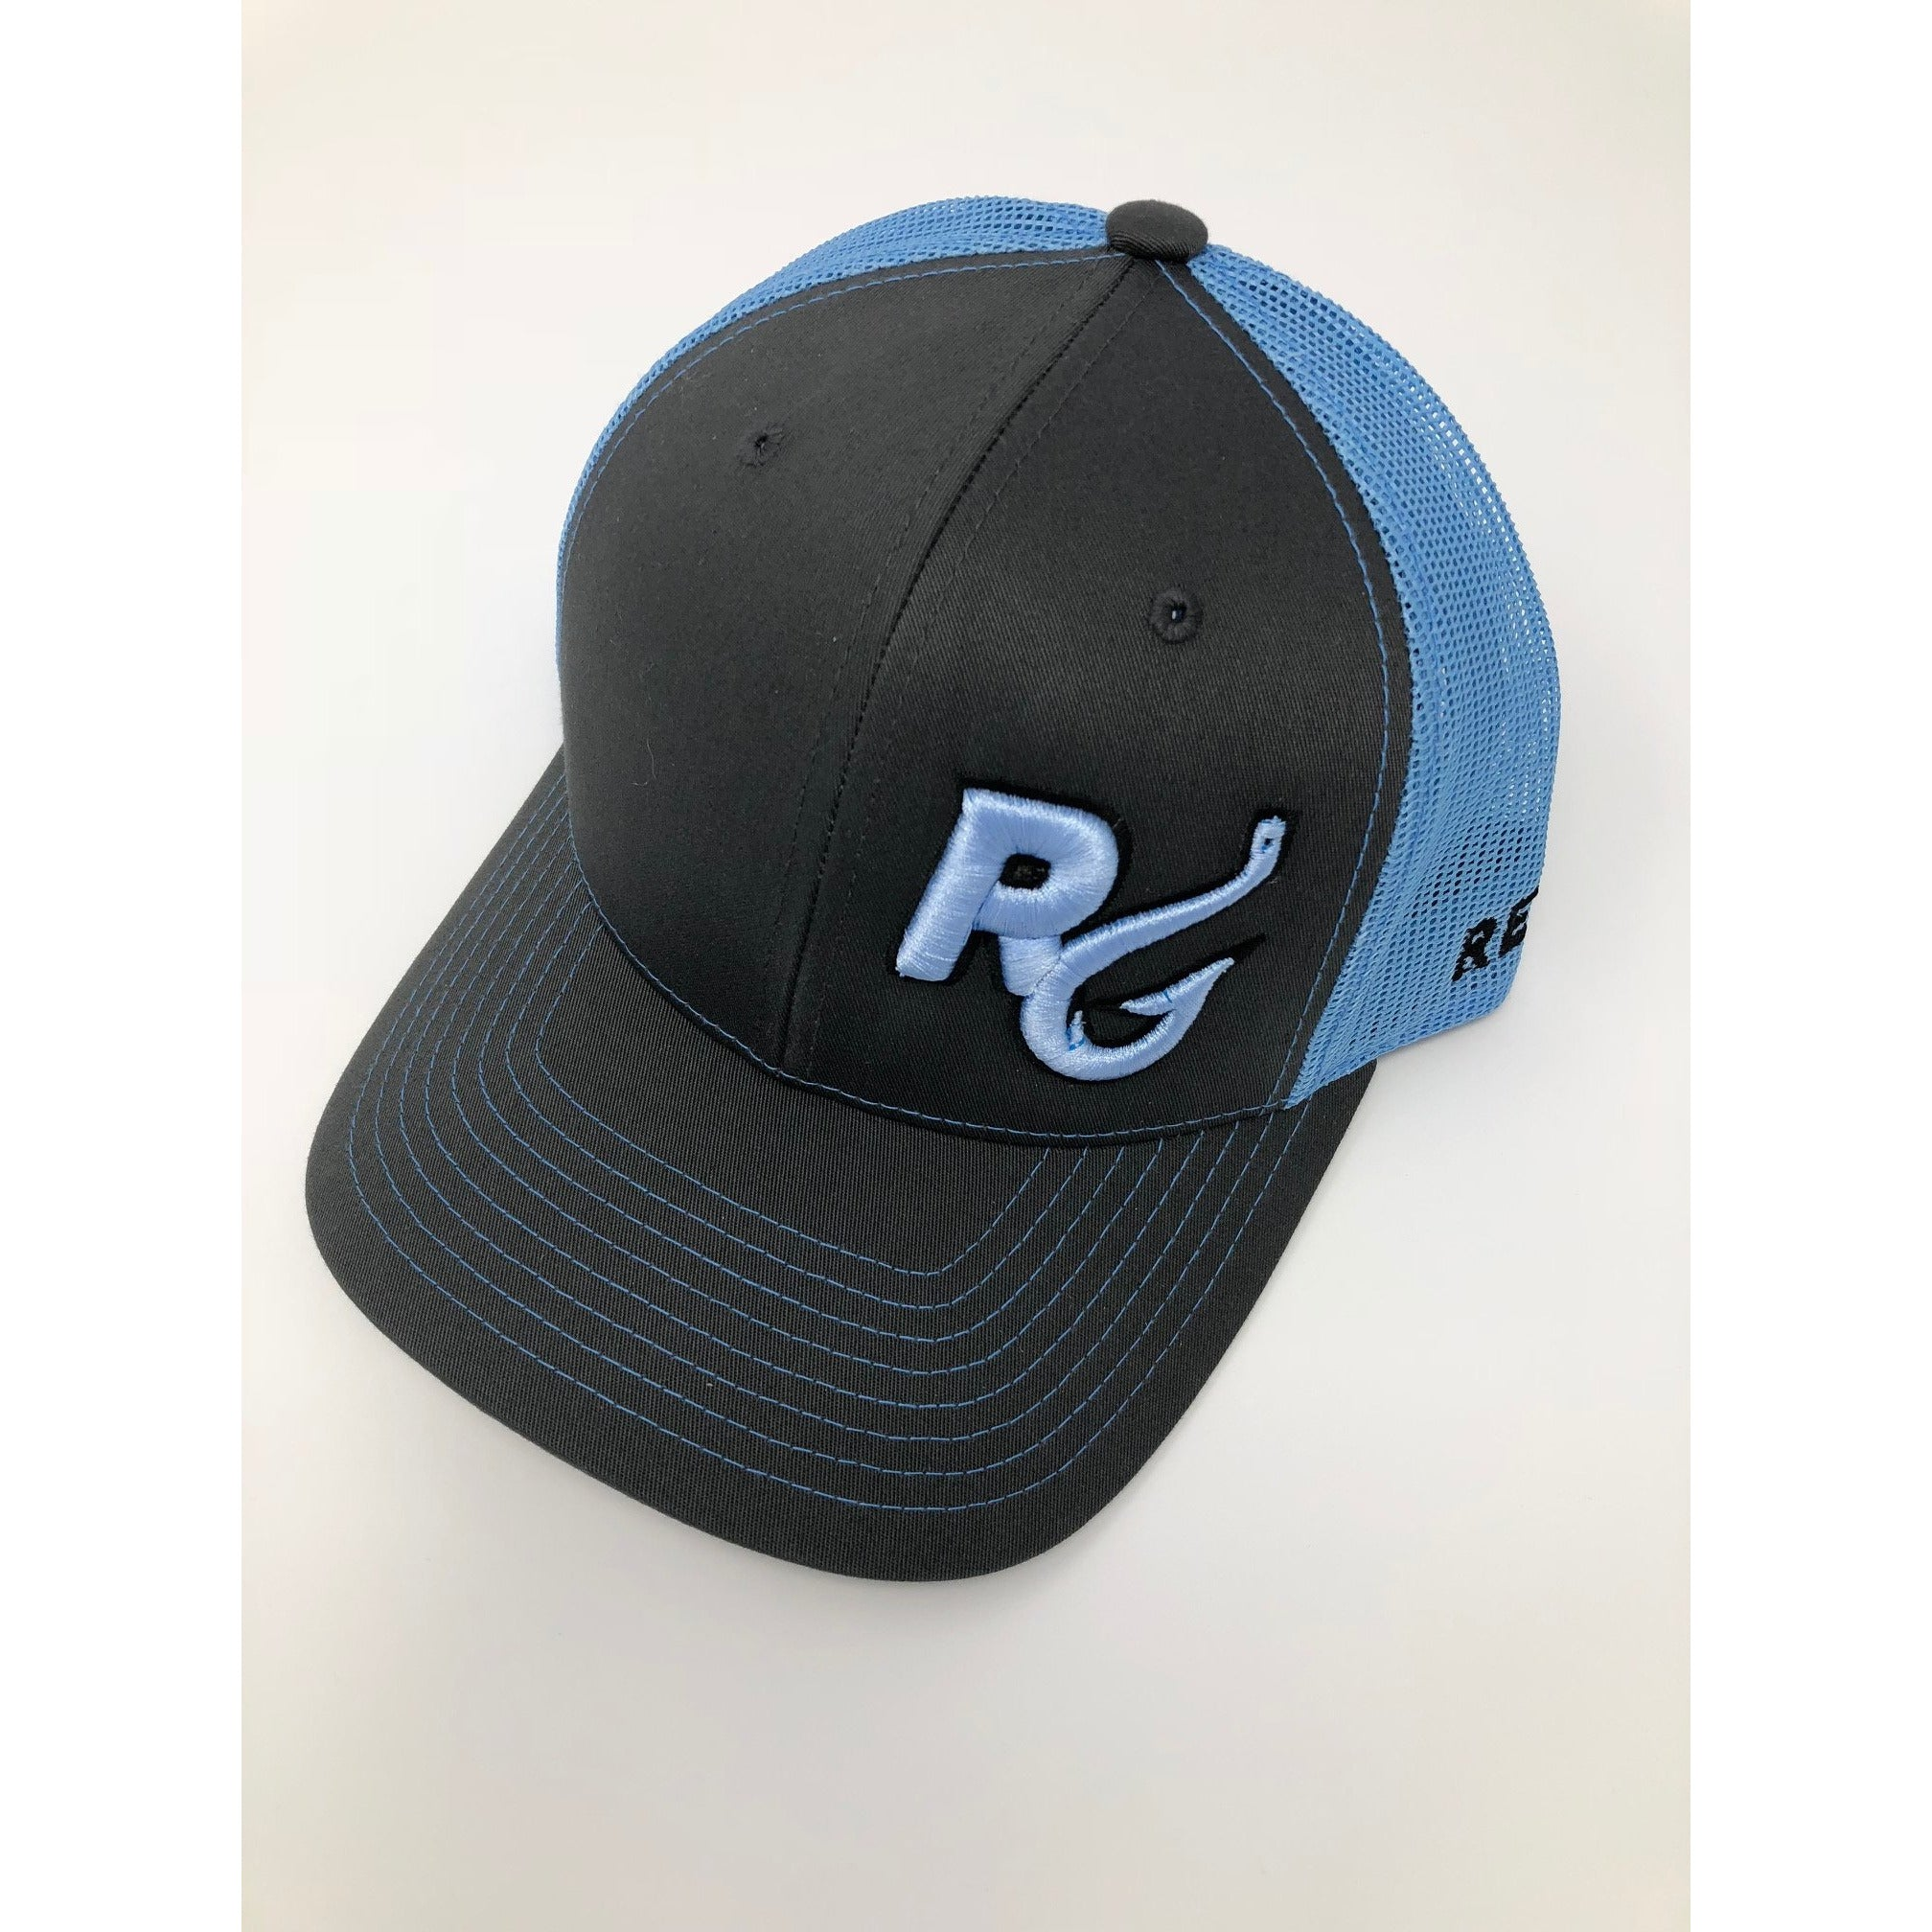 Reel Girls Classic Logo Adjustable Trucker Hat - Charcoal with Columbia Blue